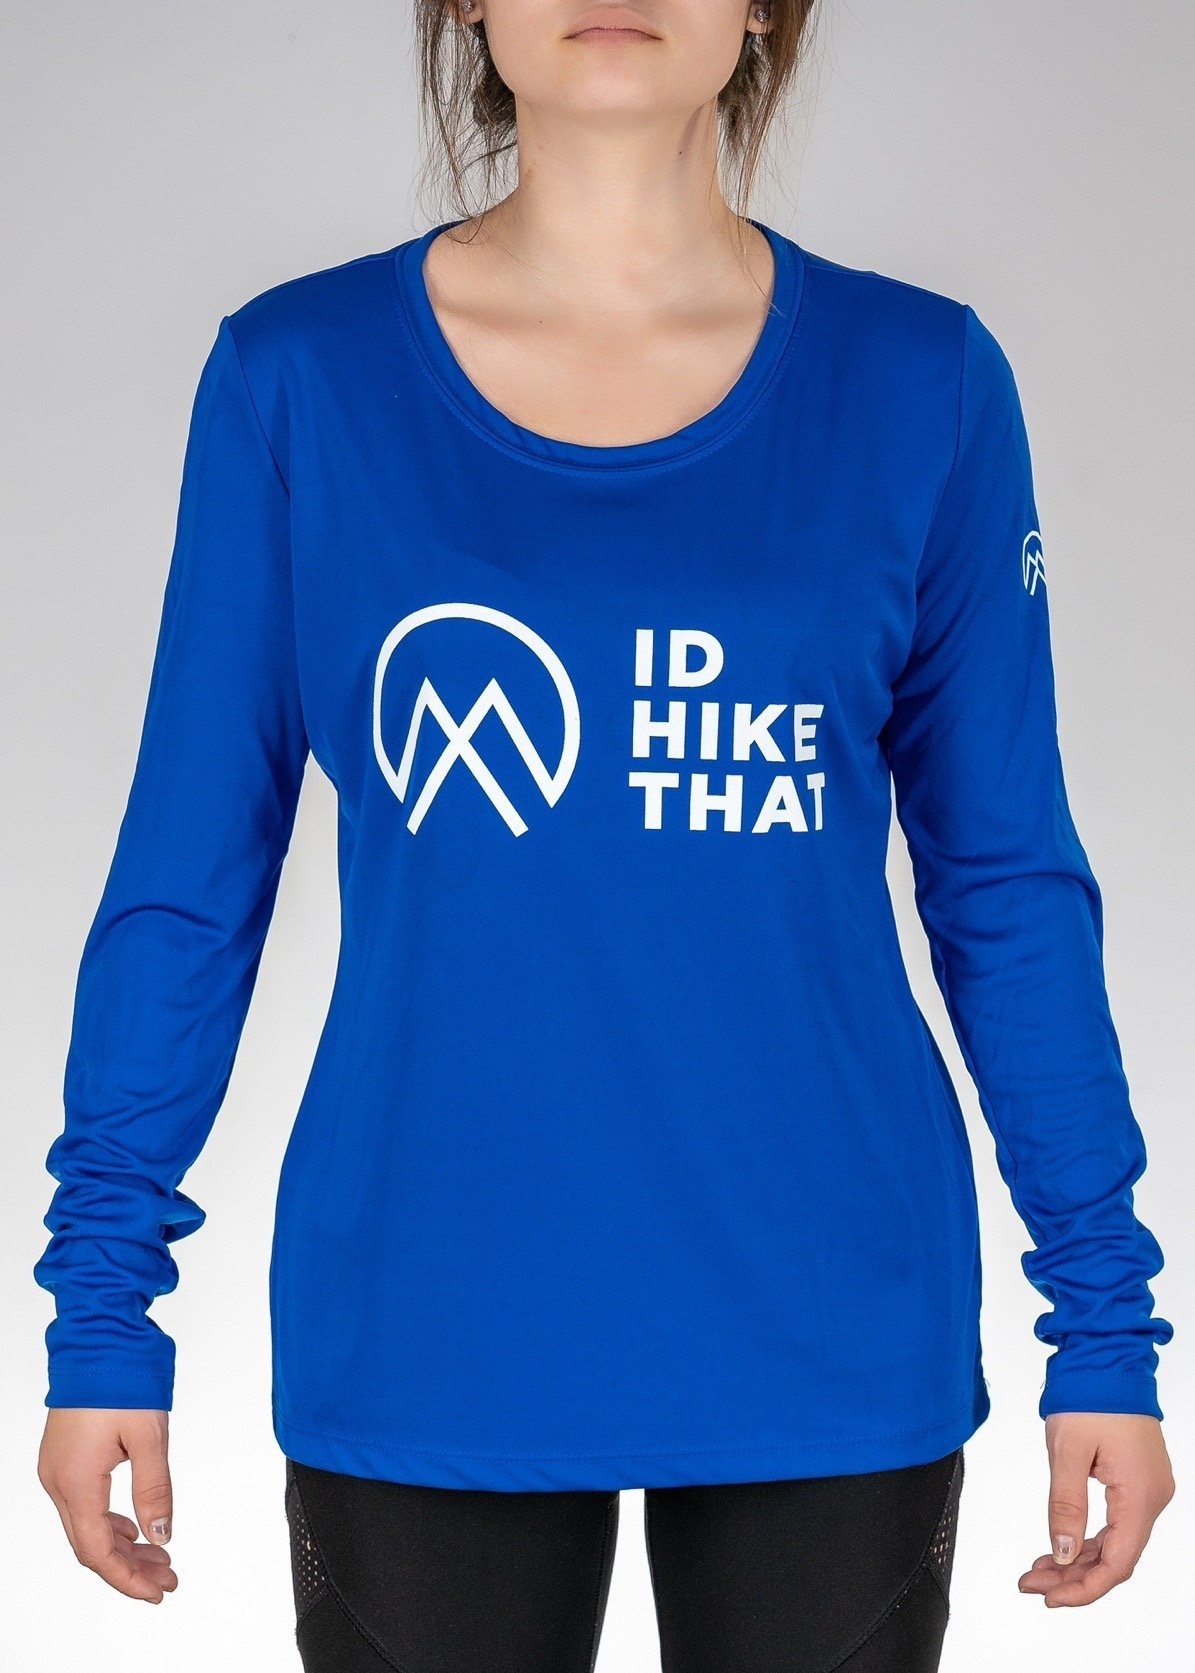 Apparel .I'd Hike That Logo! Long Sleeve - Sport Royal